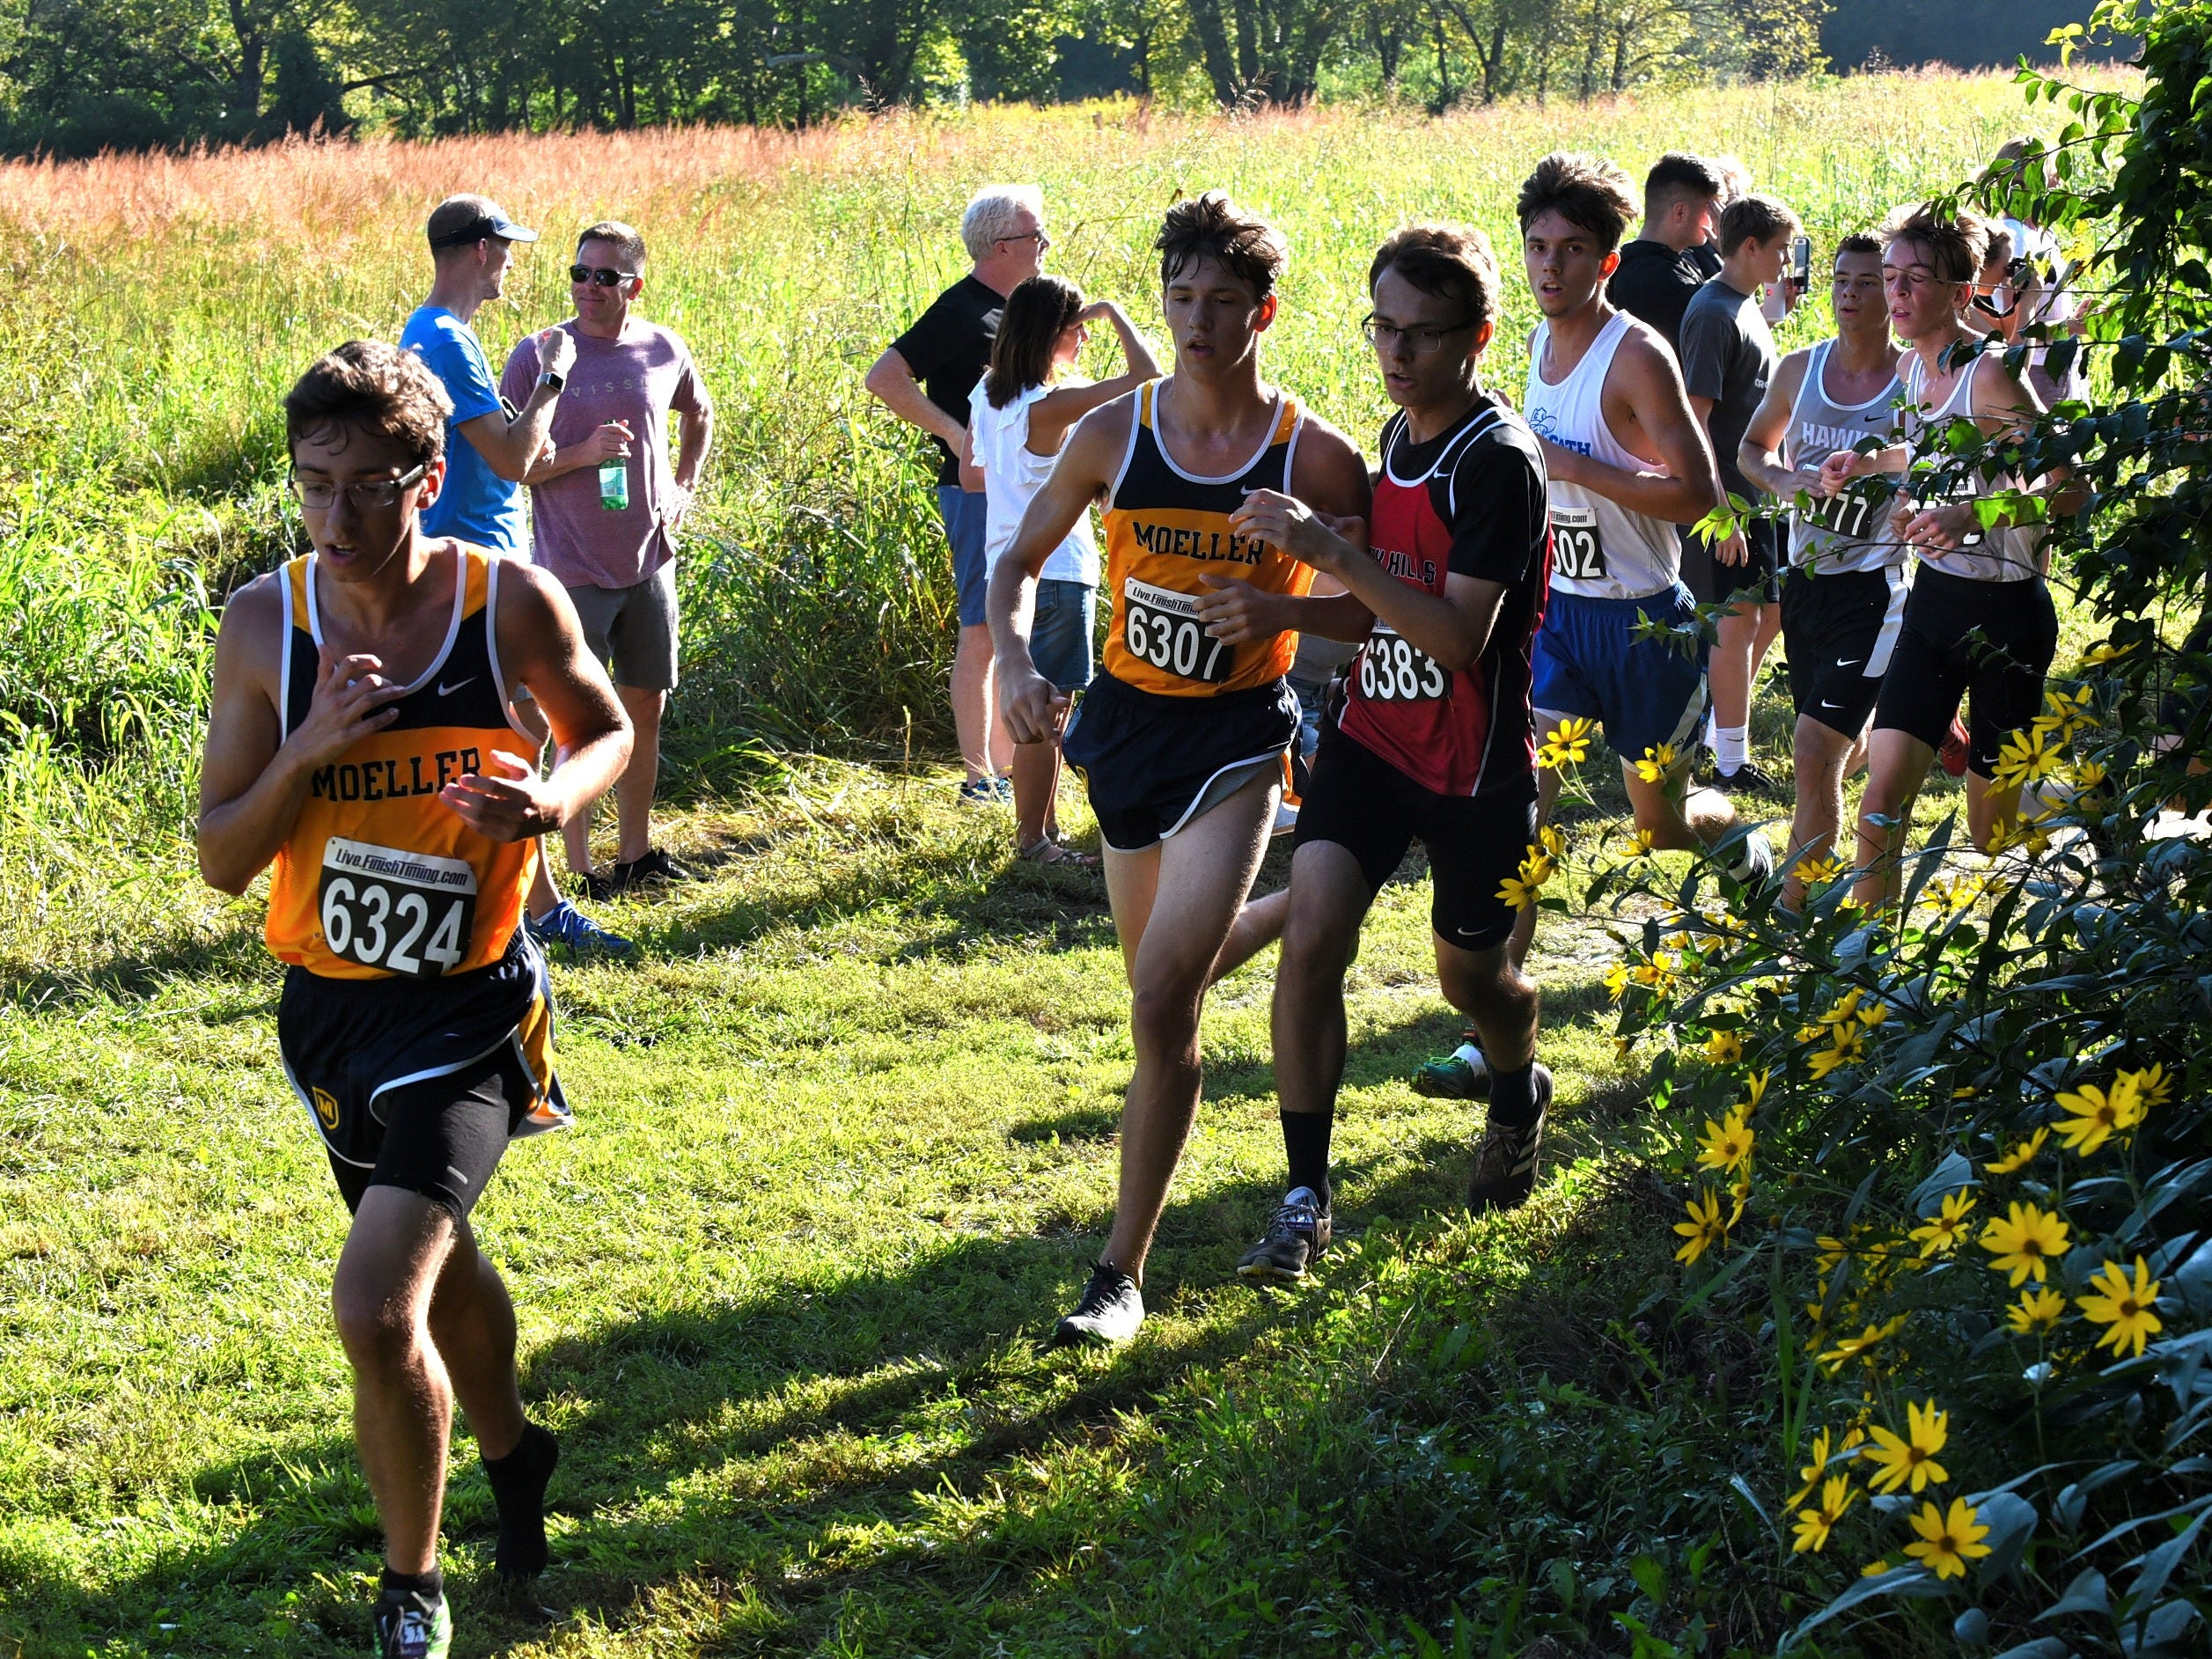 Moeller runners lead a small pack past a flowery turn at the 2018 Milford Cross Country Invitational, Sept. 15, 2018.